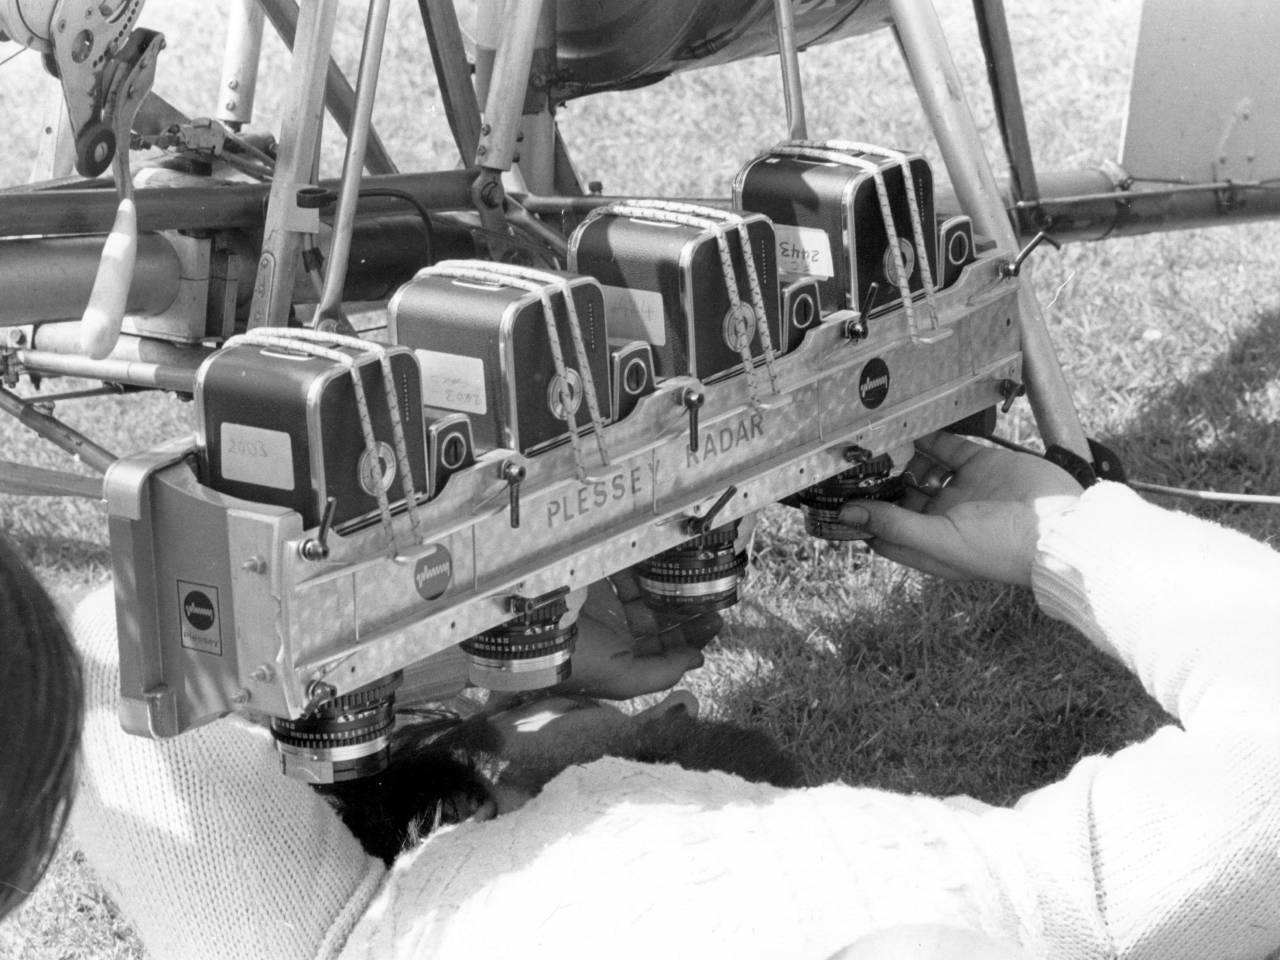 23rd May 1975: An infrared camera is adjusted for mounting on an autogyro piloted by Wing Commander Kenneth Wallis, to take photographs up to 2,000 feet above the Sussex Downs for seeking further clues to the disappearance of Lord Lucan who has been sought in connection with his children's nurse, murdered in November 1974. (Photo by Keystone/Getty Images)